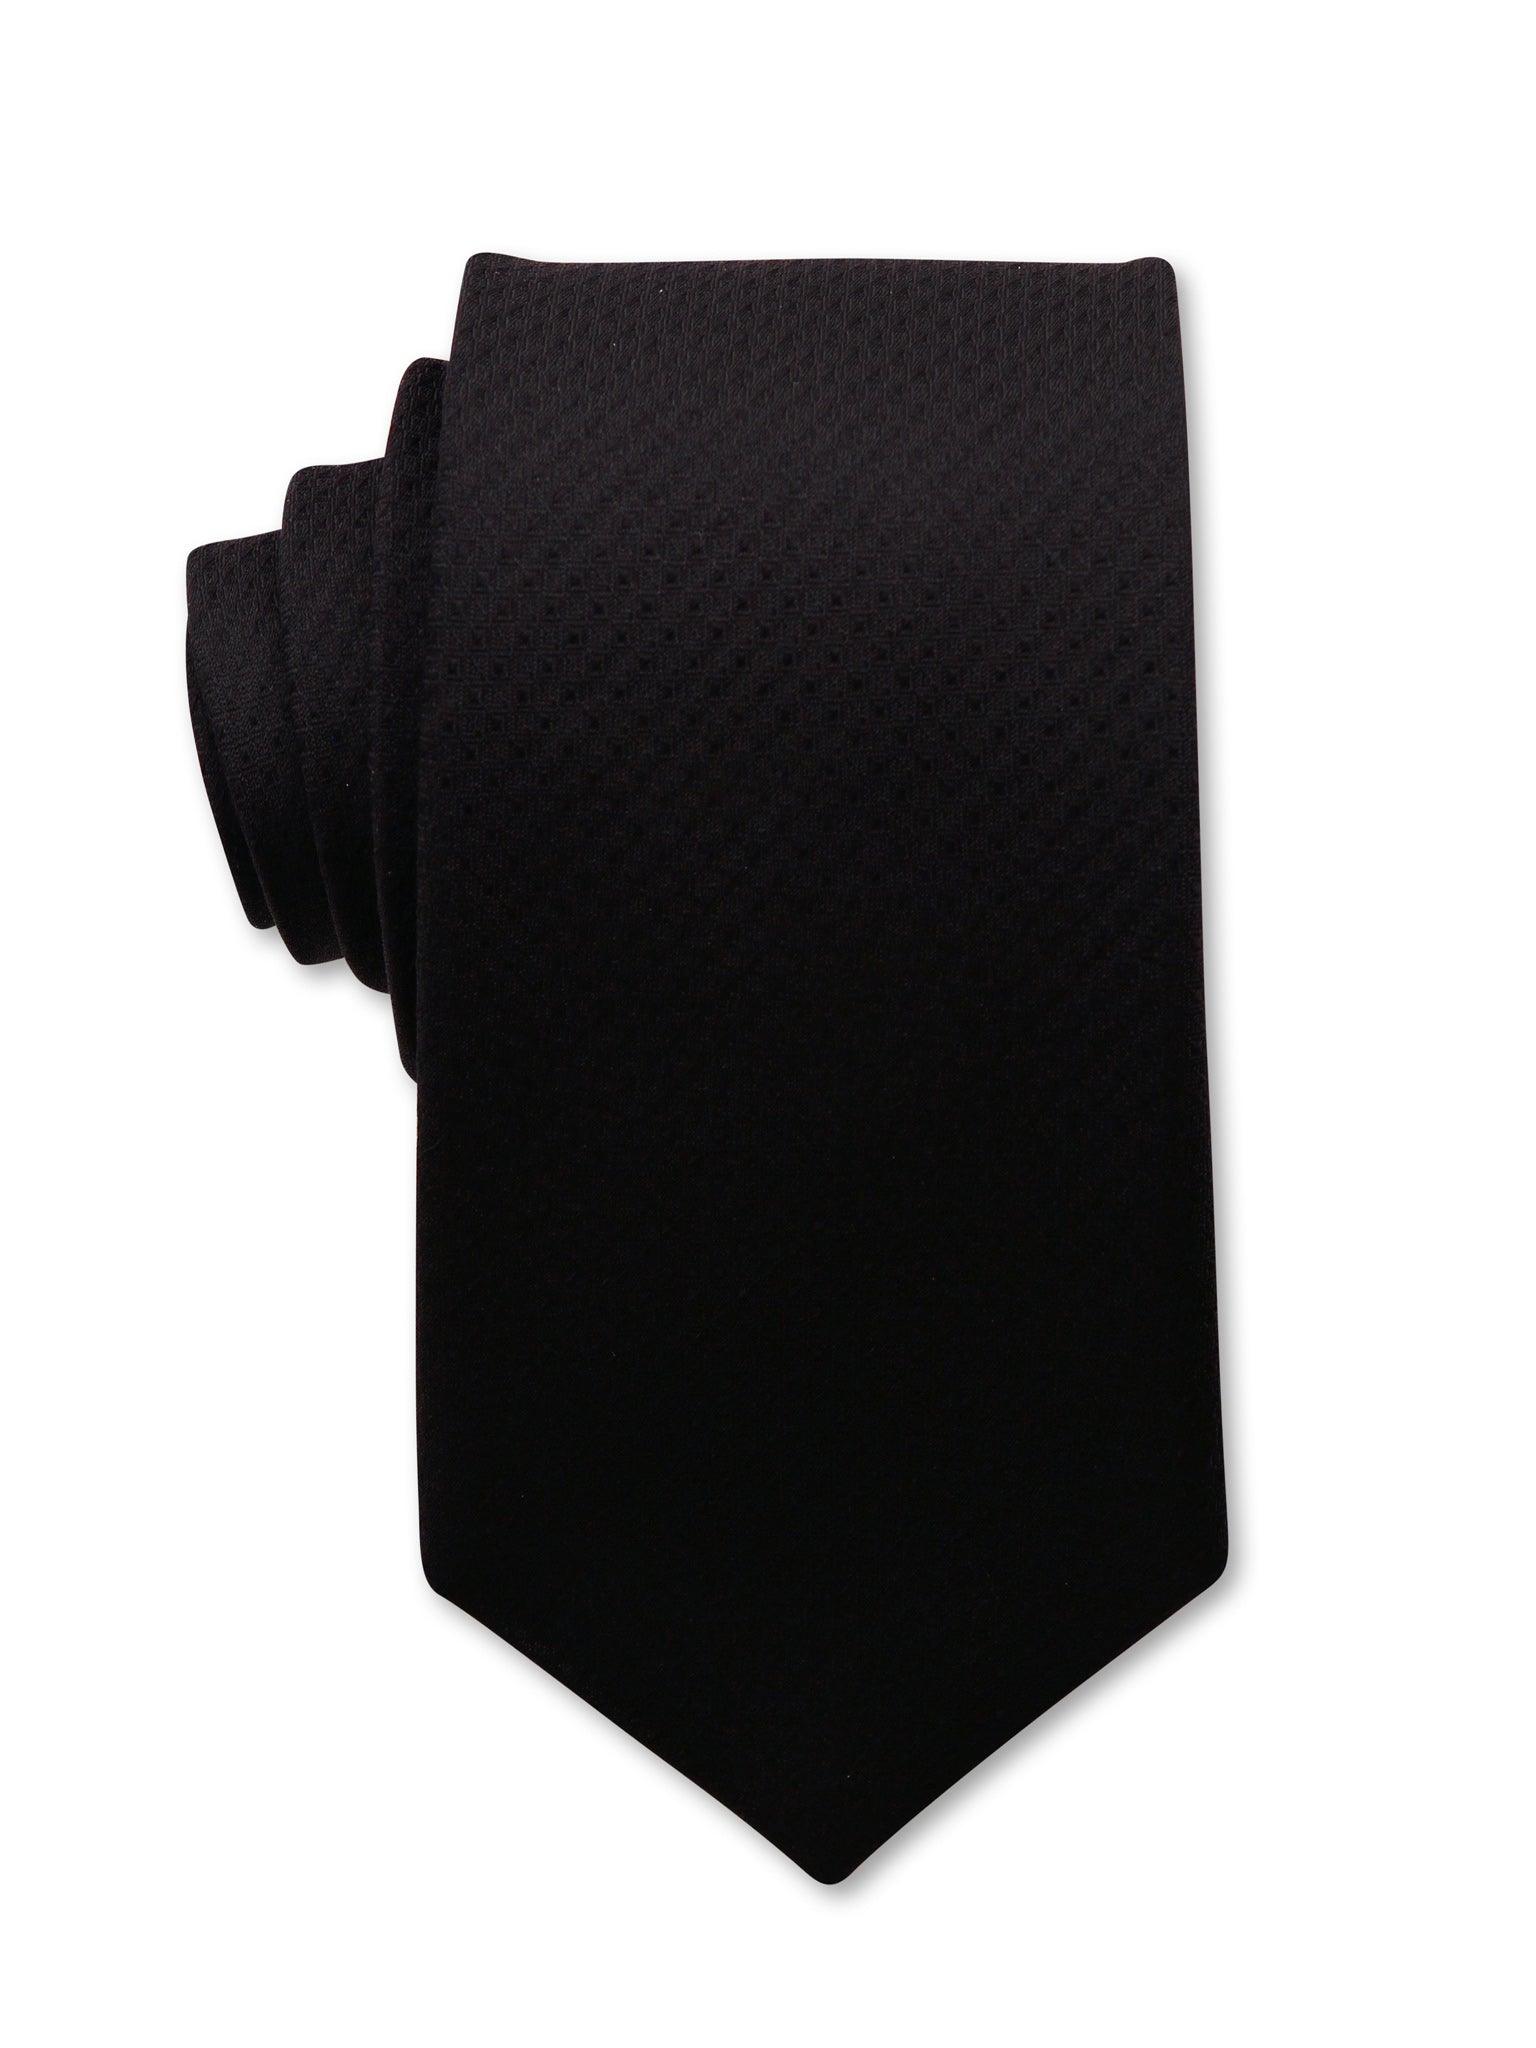 Black Textured 7cm Dean Luxury Silk Tie Made in Australia